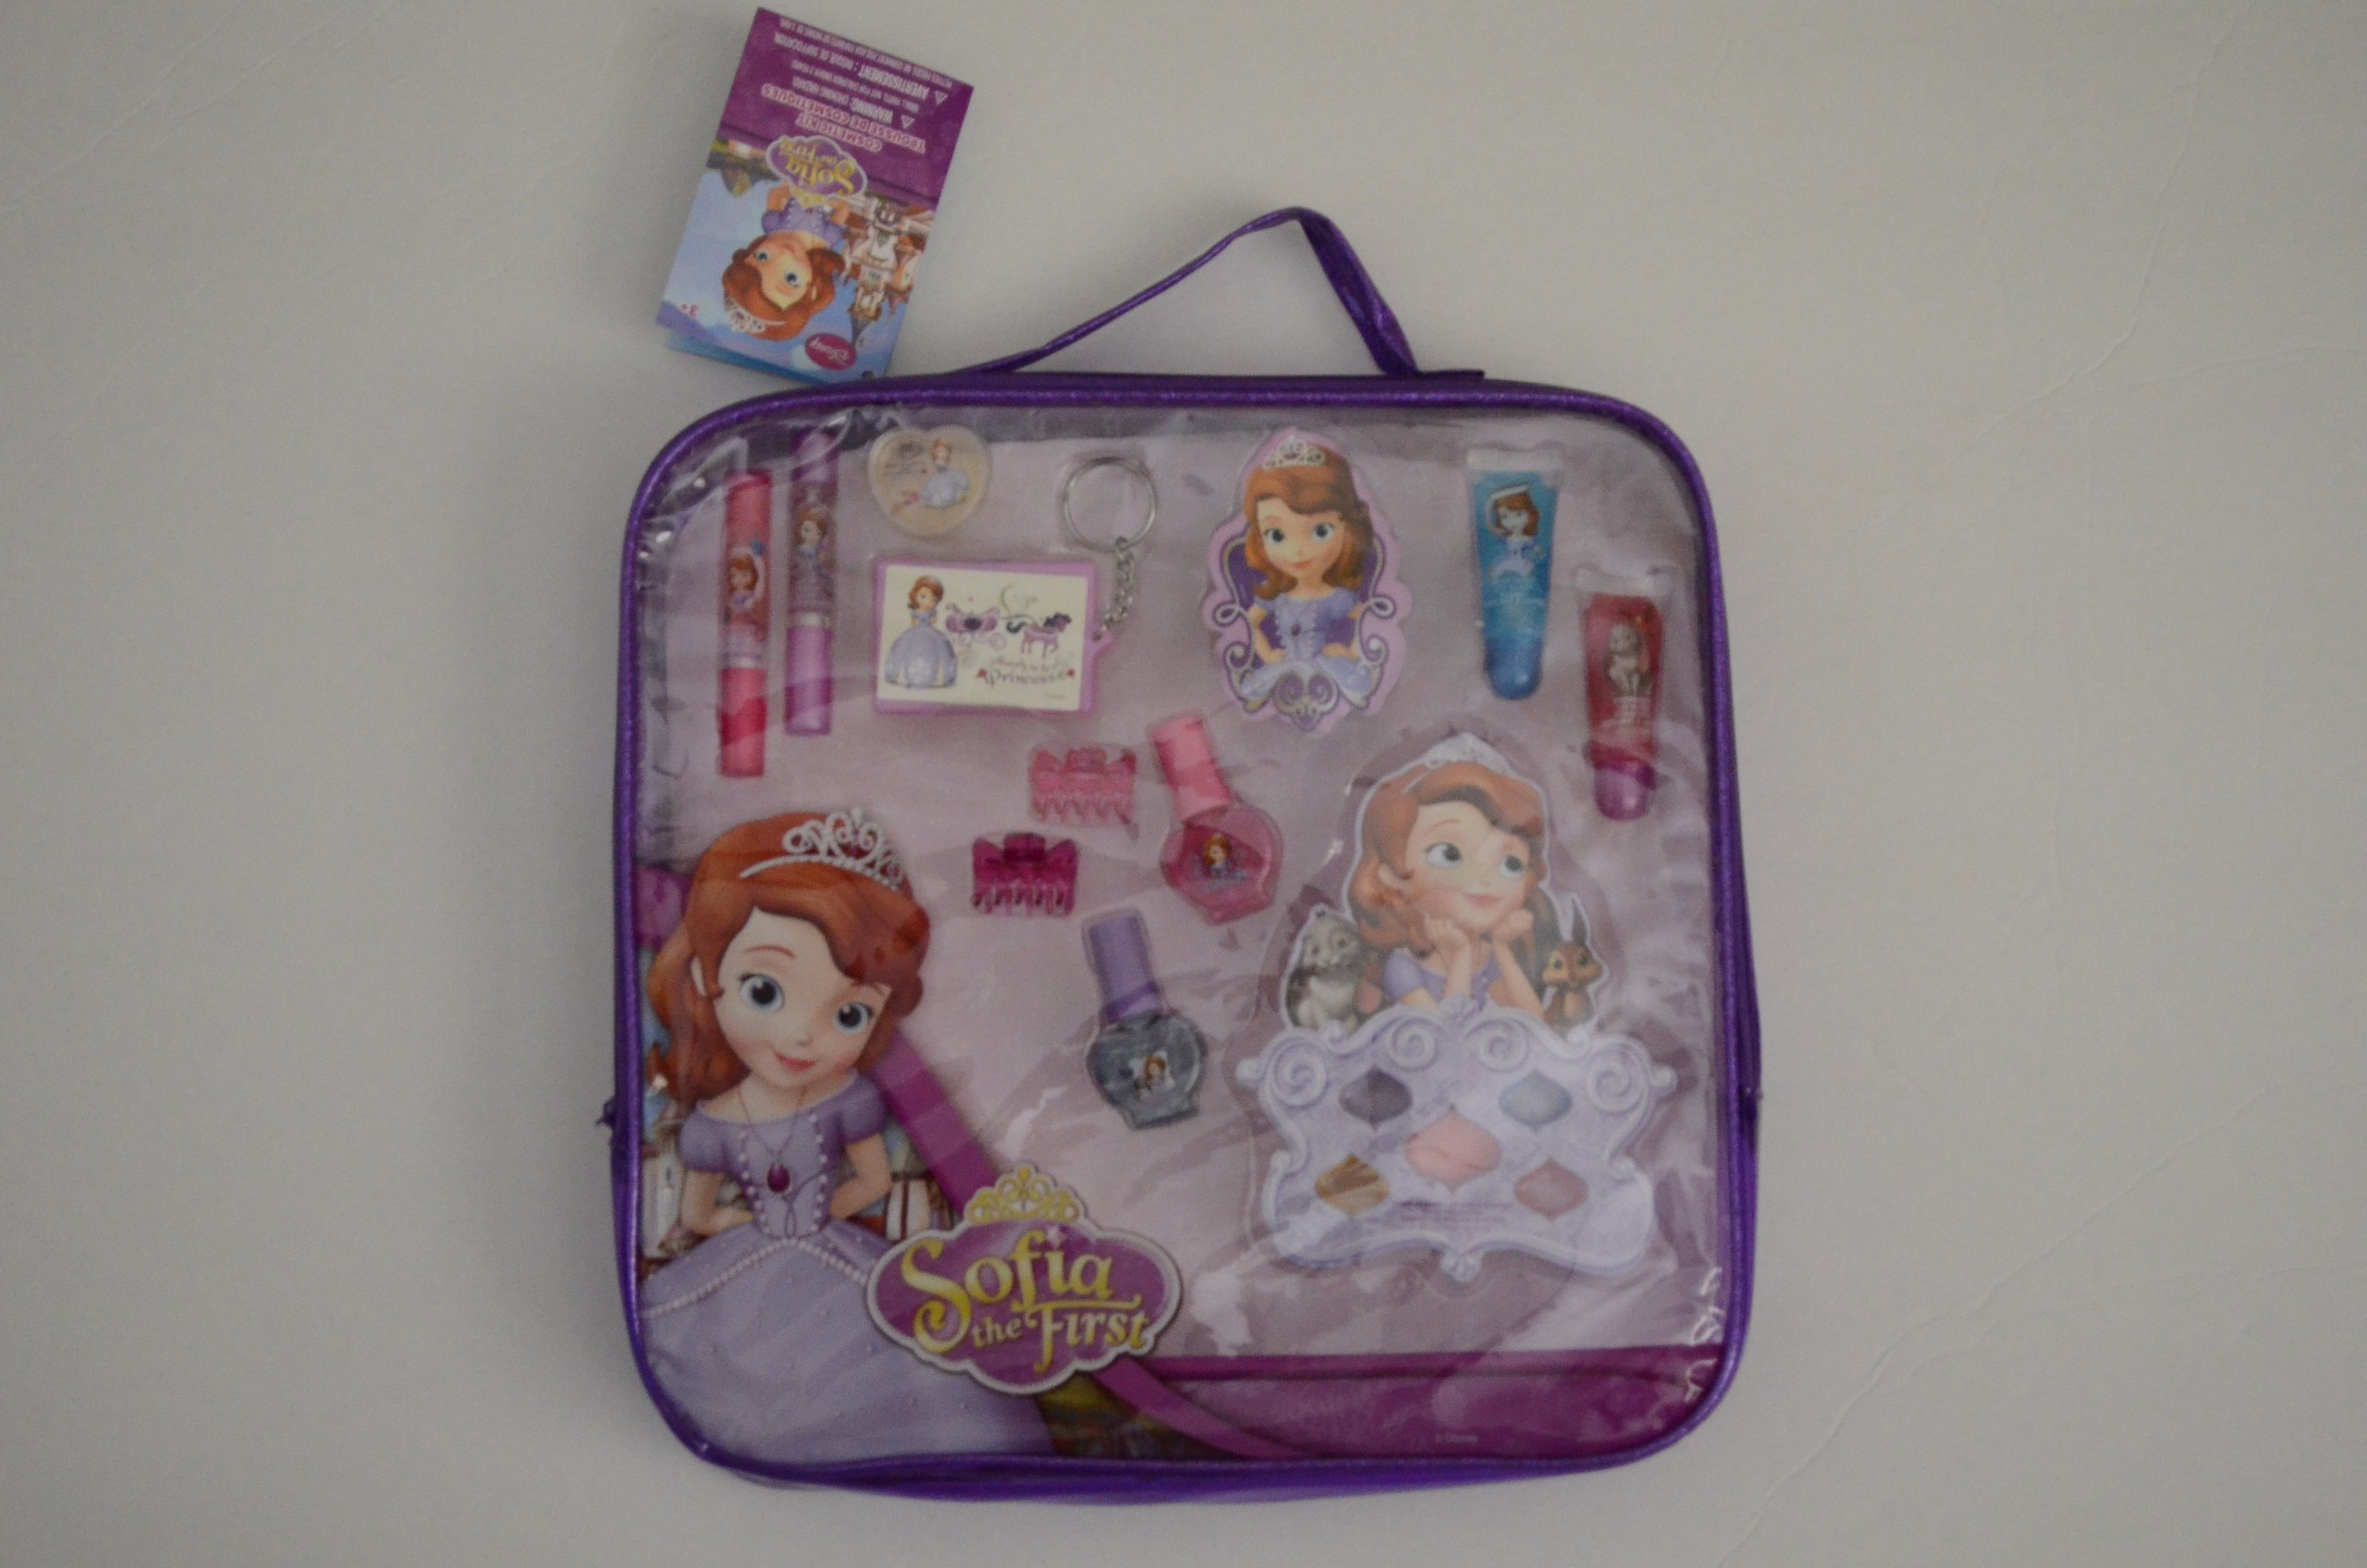 Sofia the First Pretty Purple and Glitter Carrying Case for Cosmetic Kit with Child's Nail Polish, Key Chain, Scents, Lip Gloss, Pouch, Mirror and Hair Clips by Disney